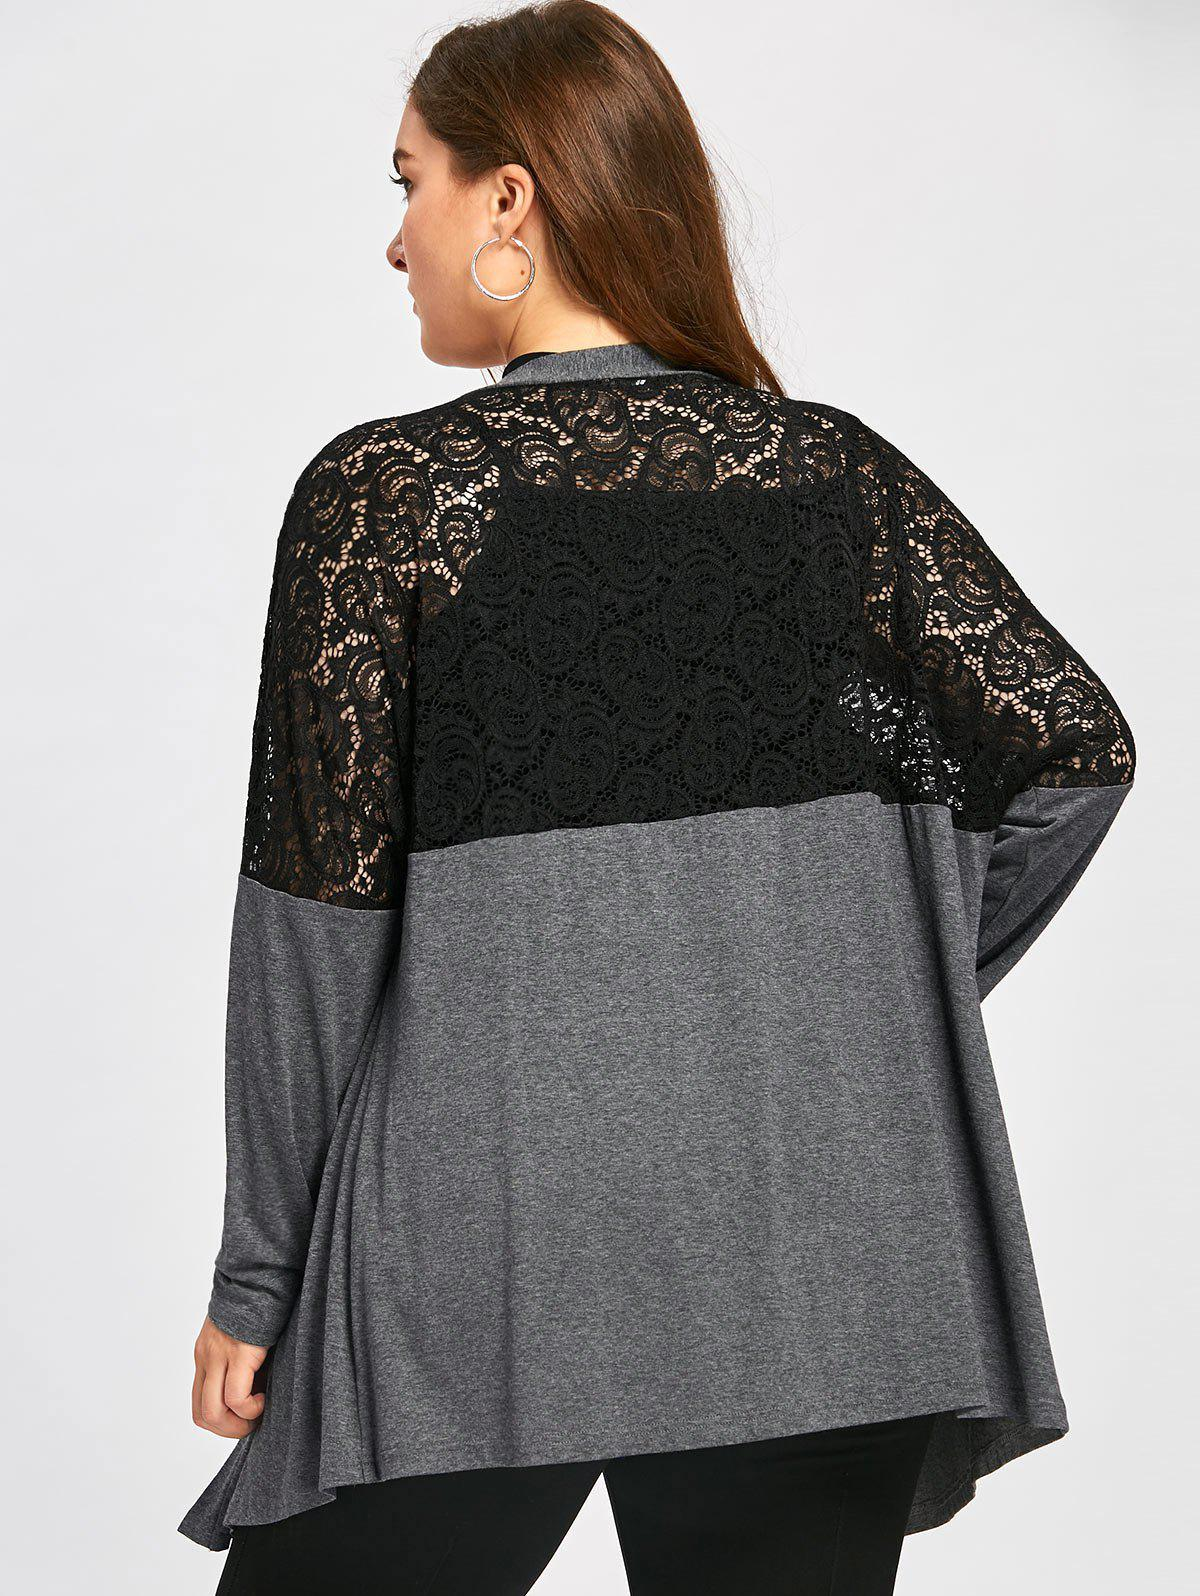 Plus Size Lace Yoke Marled Cardigan - DEEP GRAY 5XL